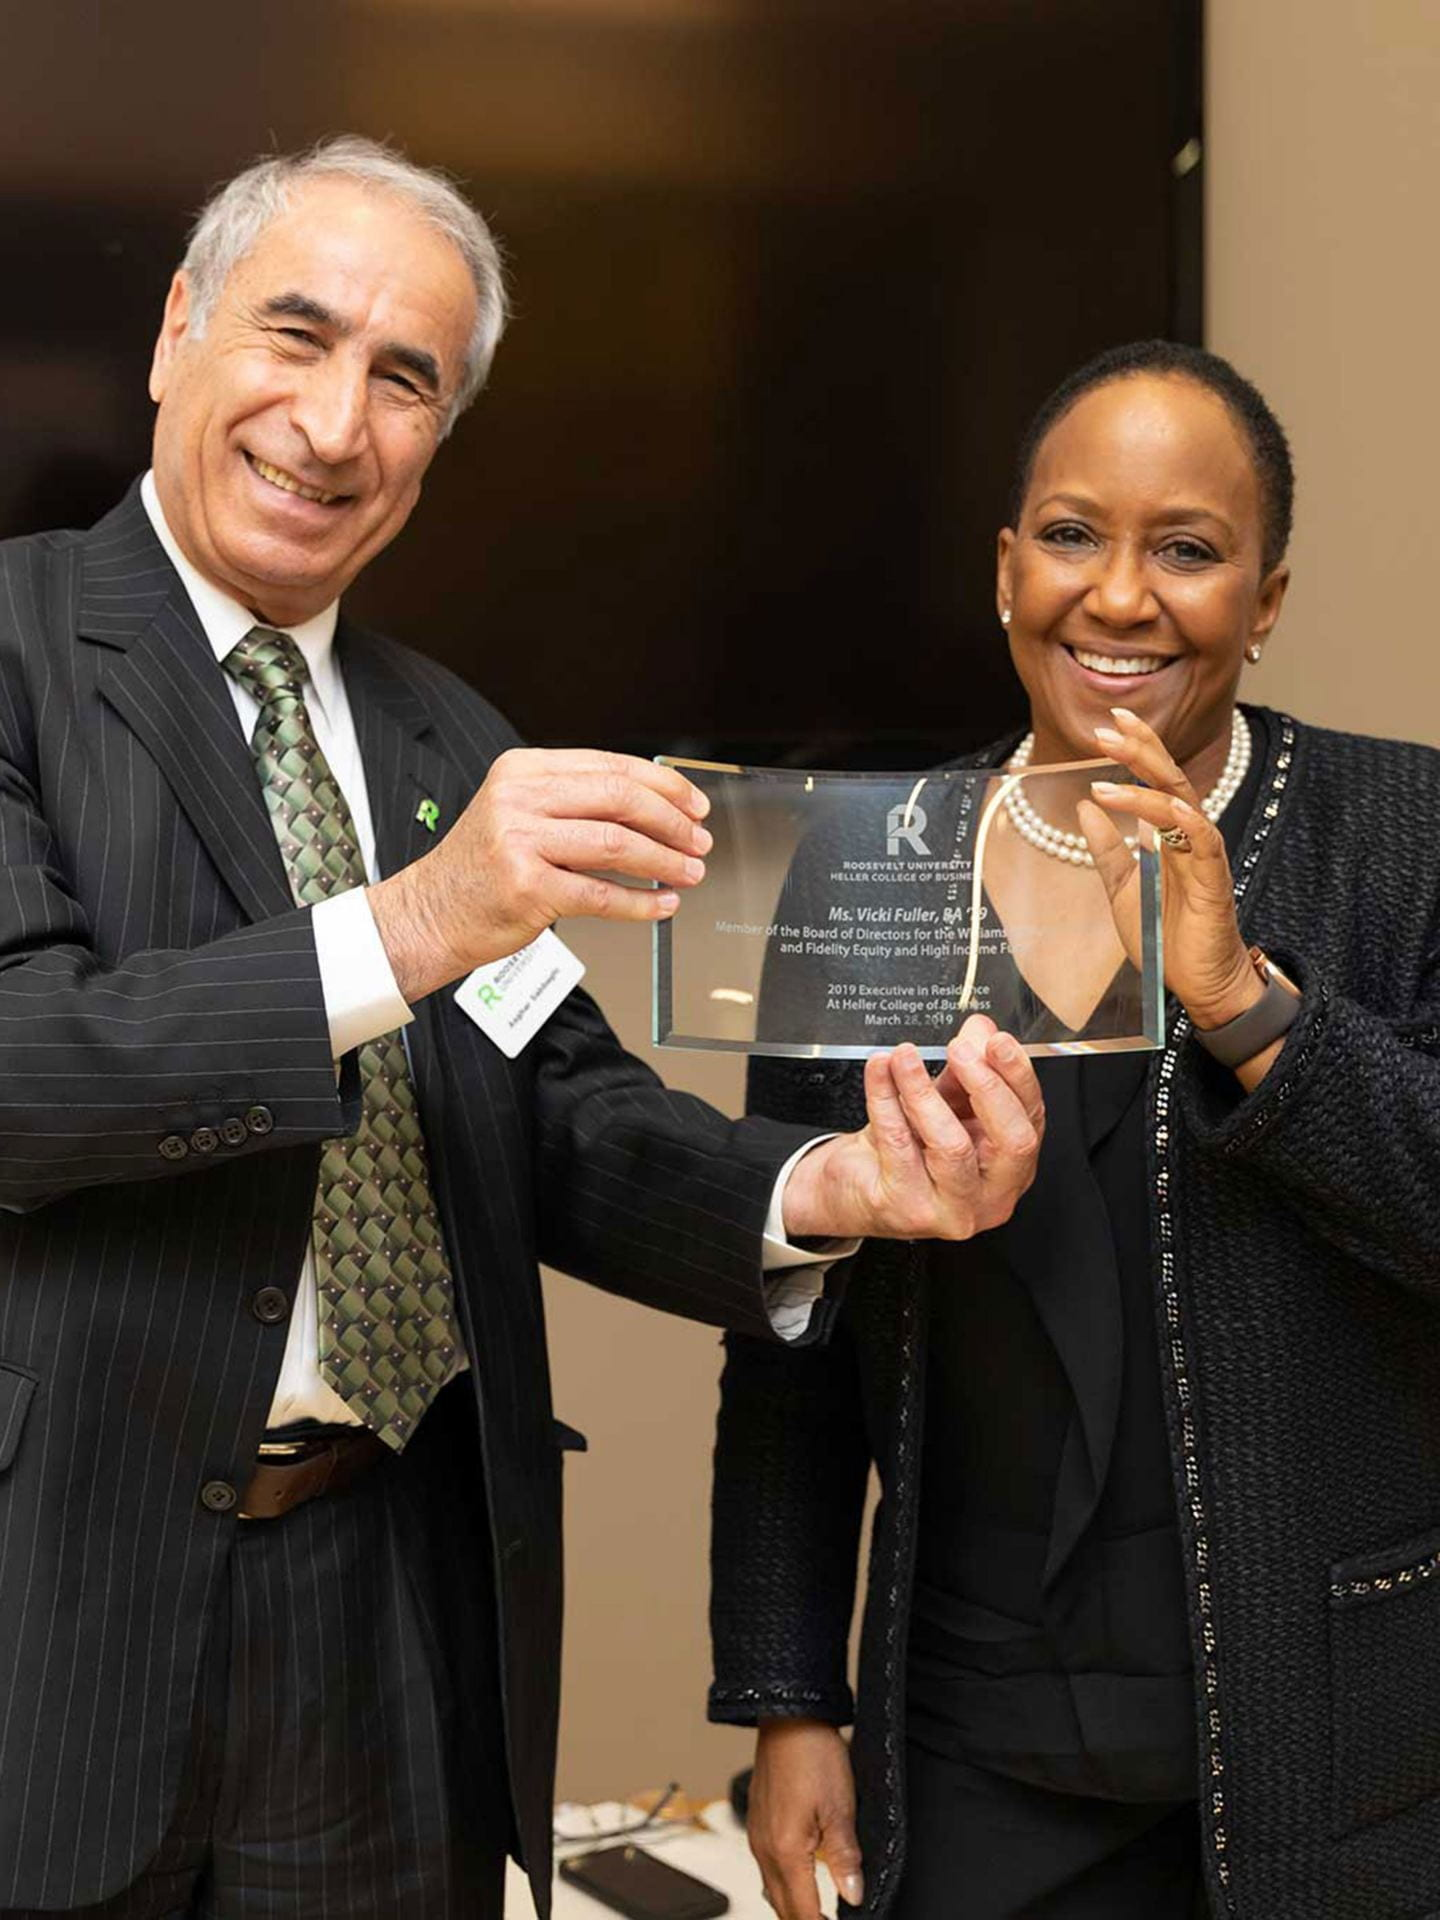 During Vicki Fuller's visit to Roosevelt University, Heller College of Business Dean Asghar Sabbaghi presented her with an award recognizing her storied career and contributions.